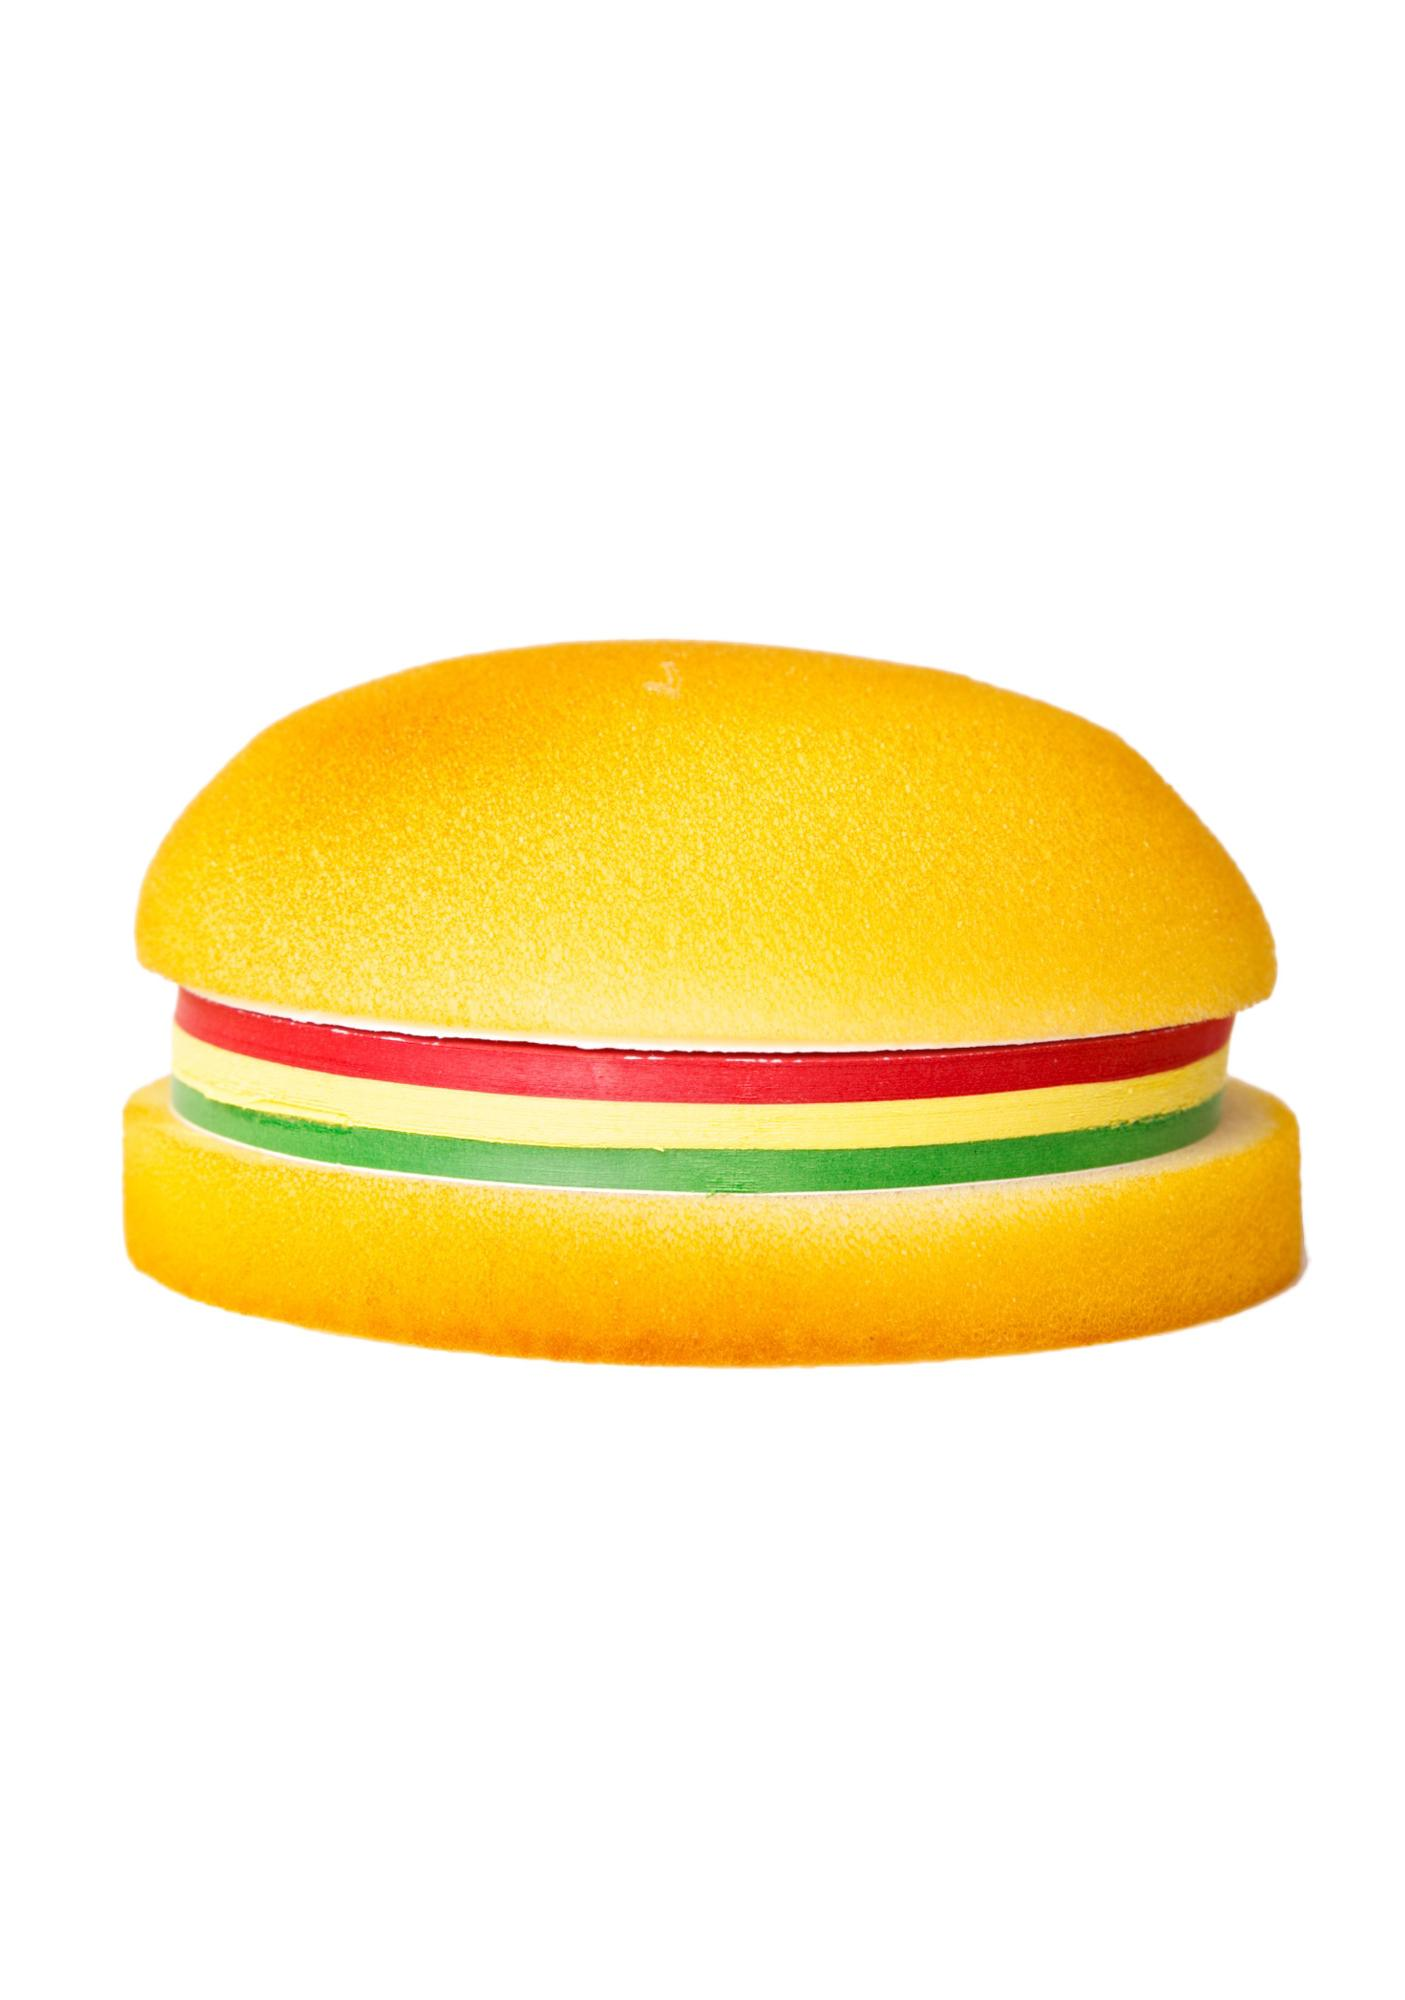 Good Burger Memo Pad